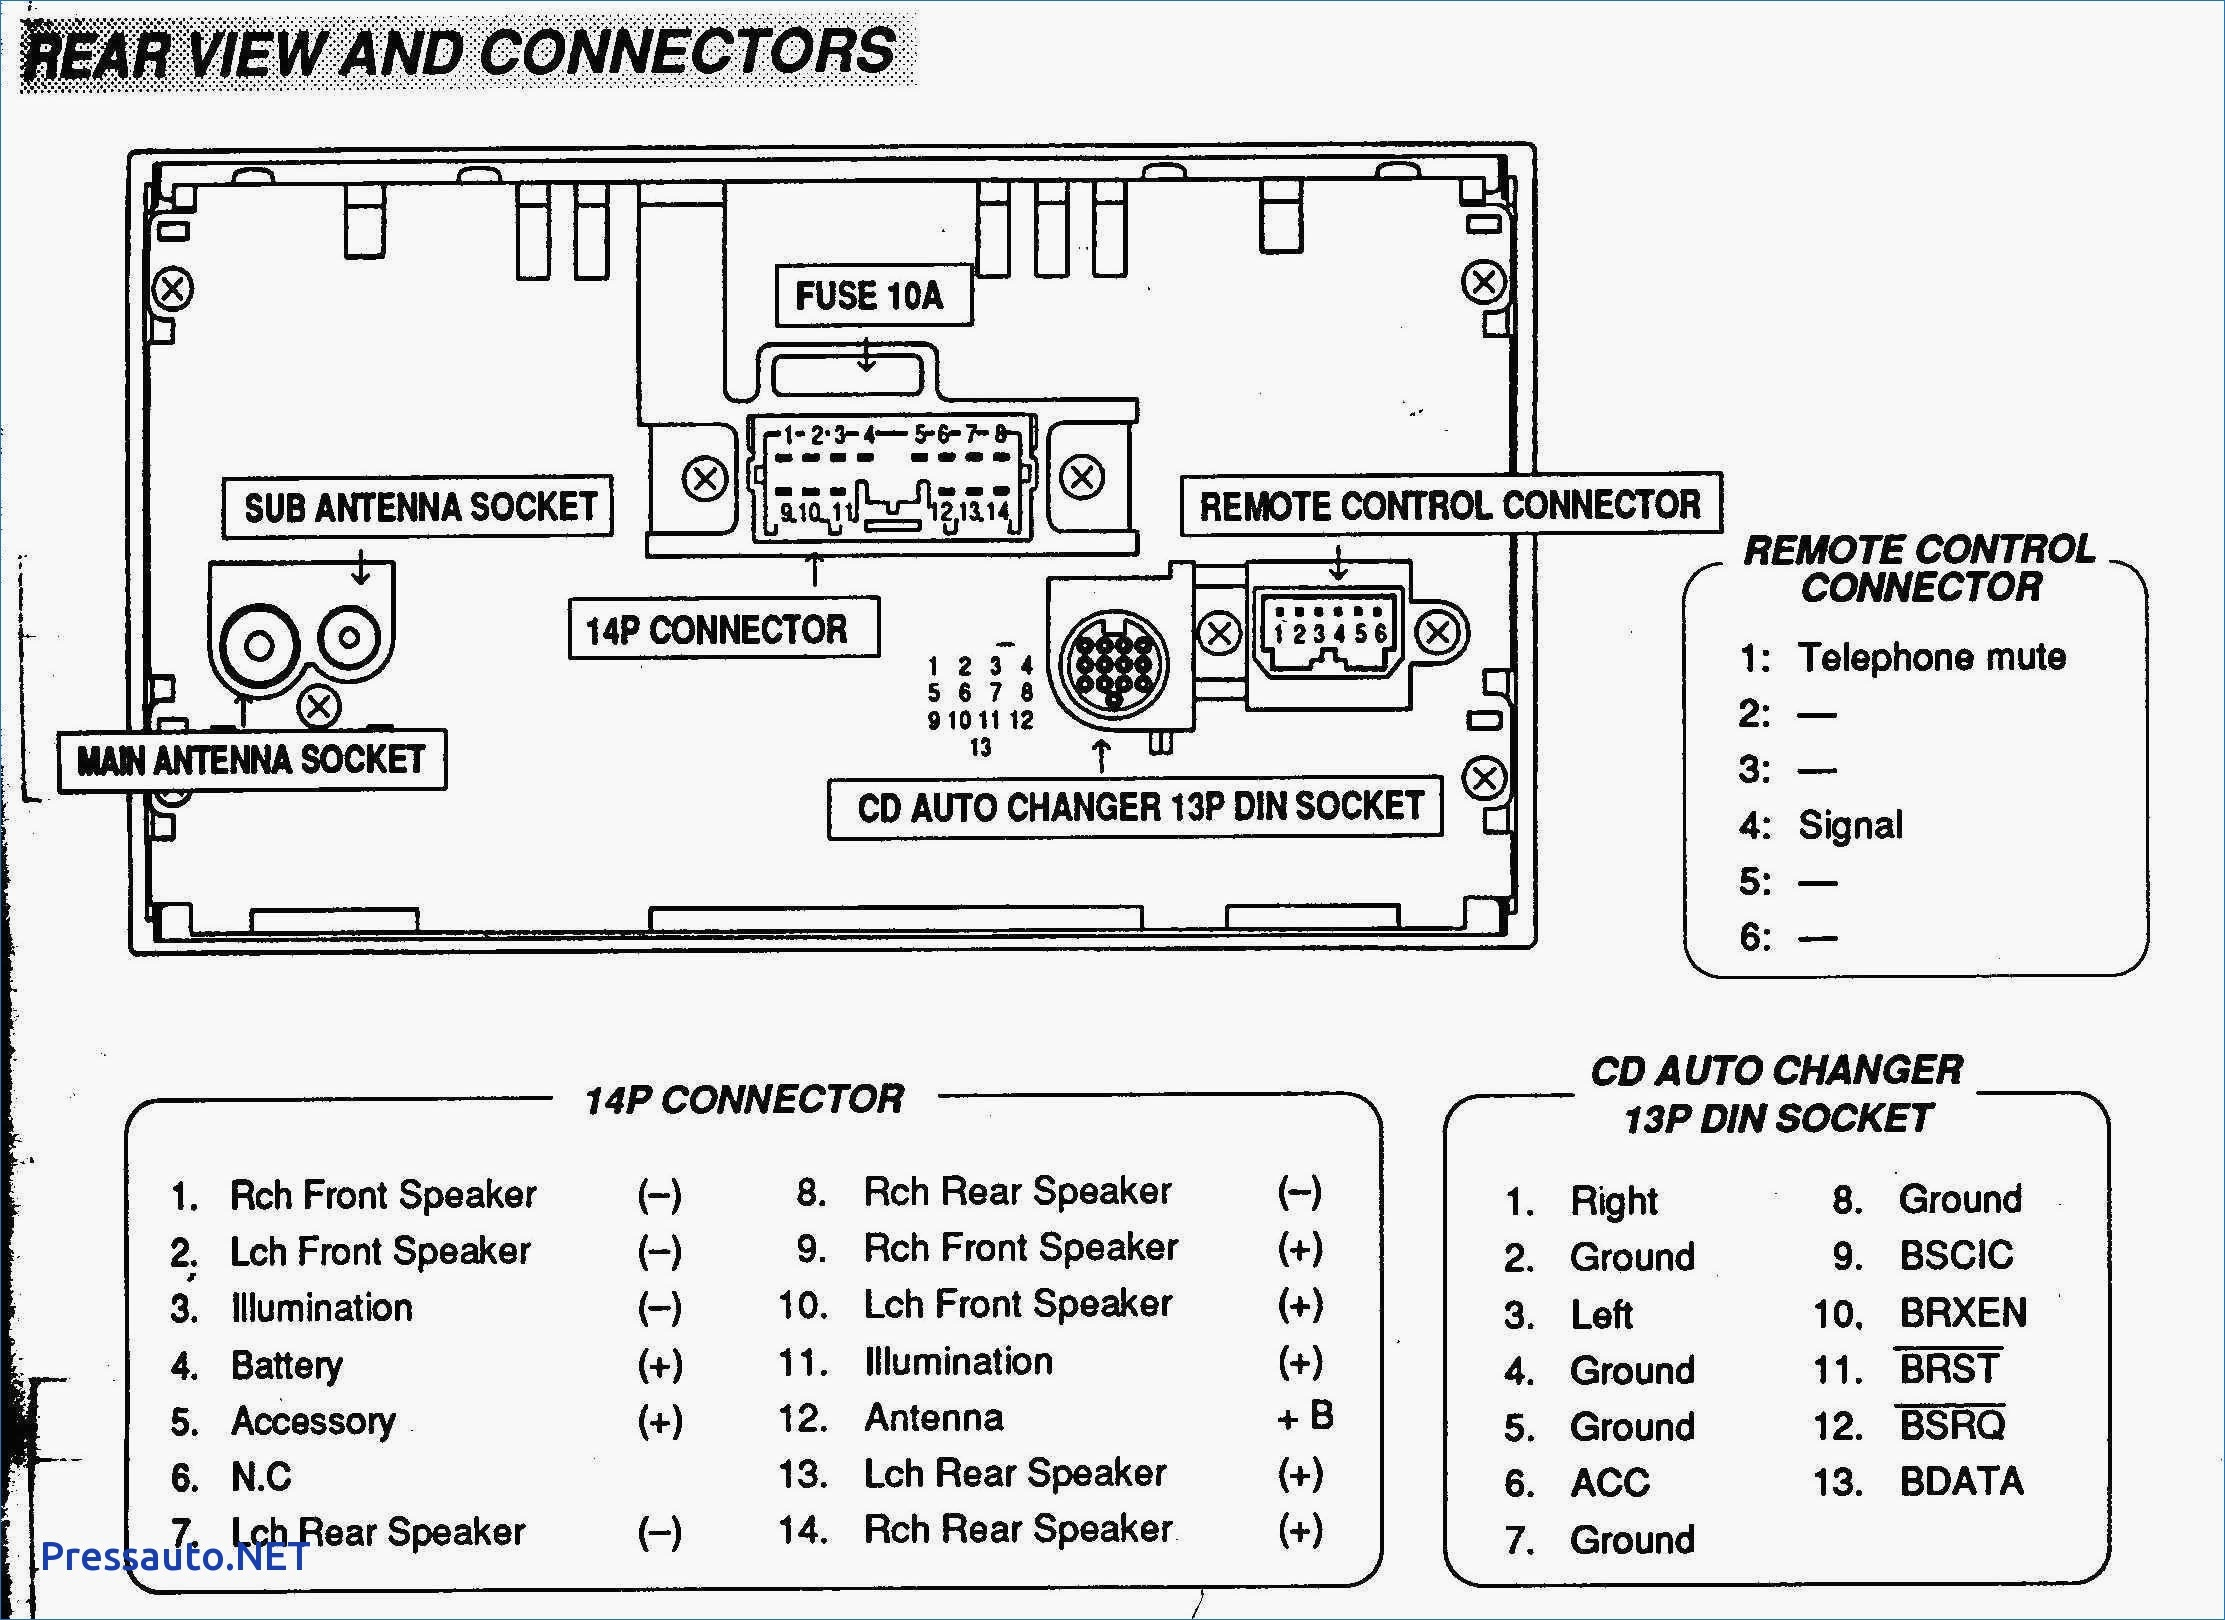 2001 Vw Jetta Radio Wiring Diagram | Free Wiring Diagram